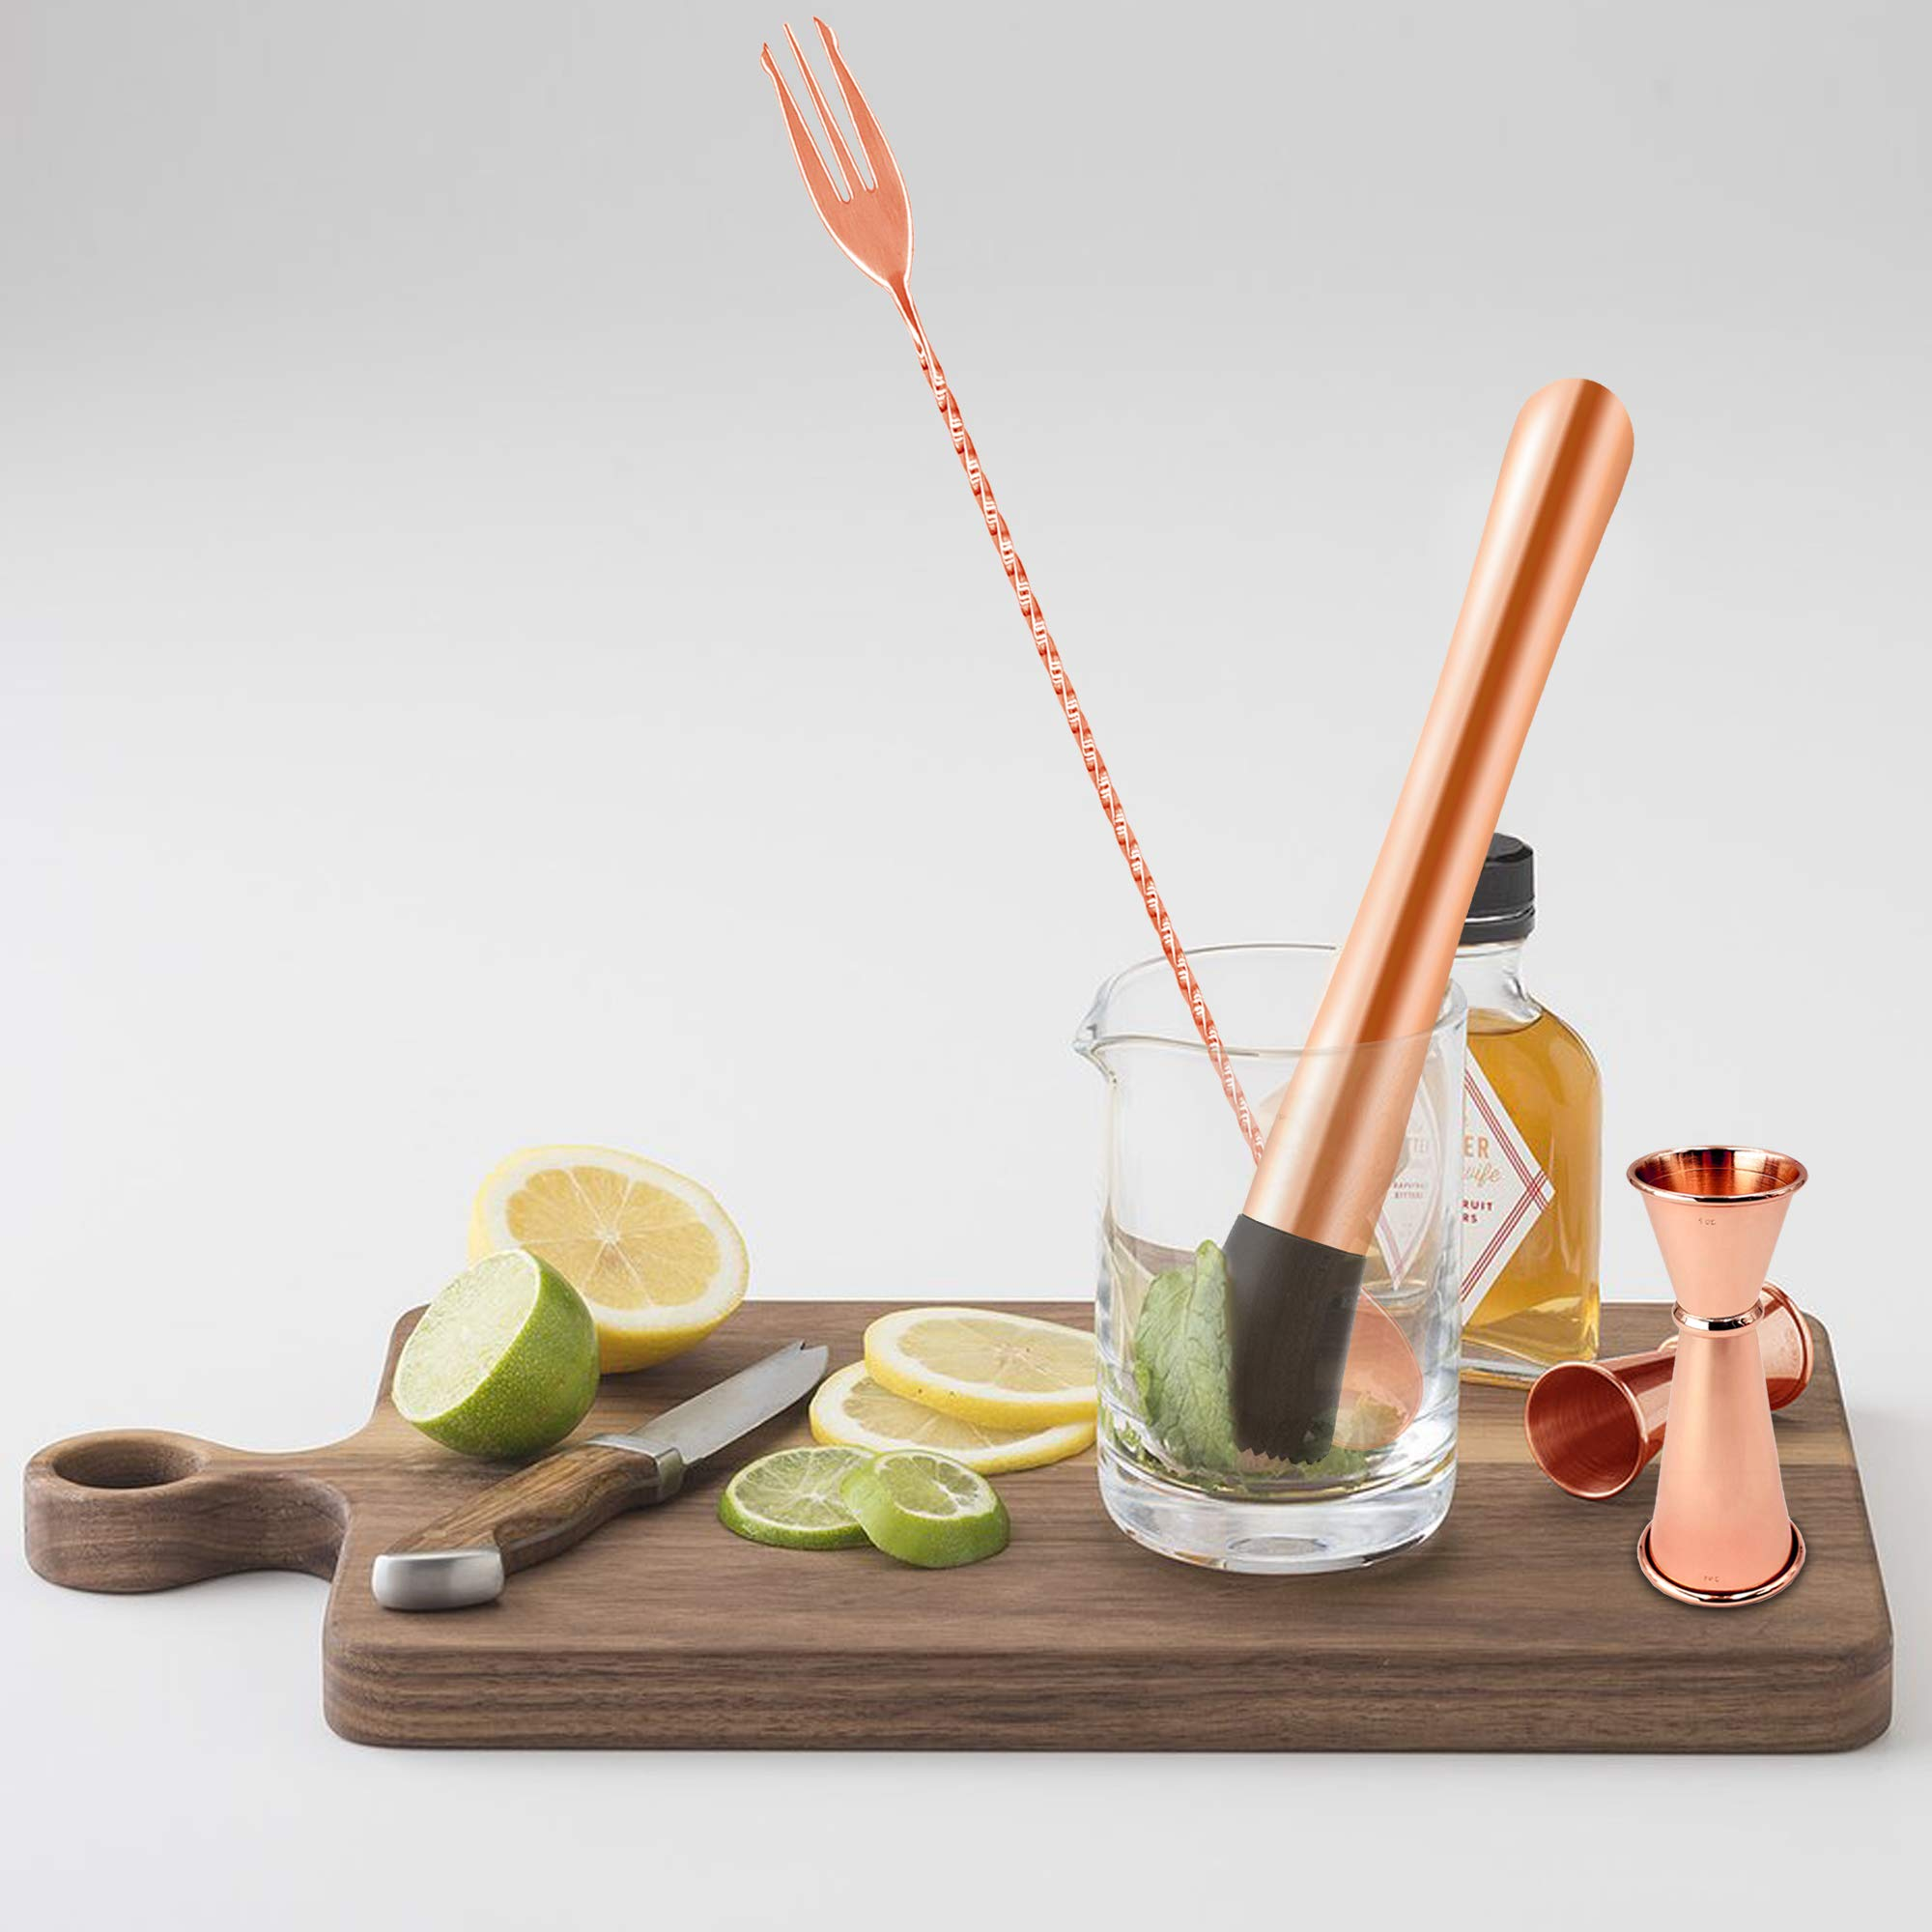 Homestia 3 PIECE Muddler Set Stainless Steel Cocktail Muddler with Double Jigger, Bar Spoon Mojito Bar Tool Copper by Homestia (Image #3)